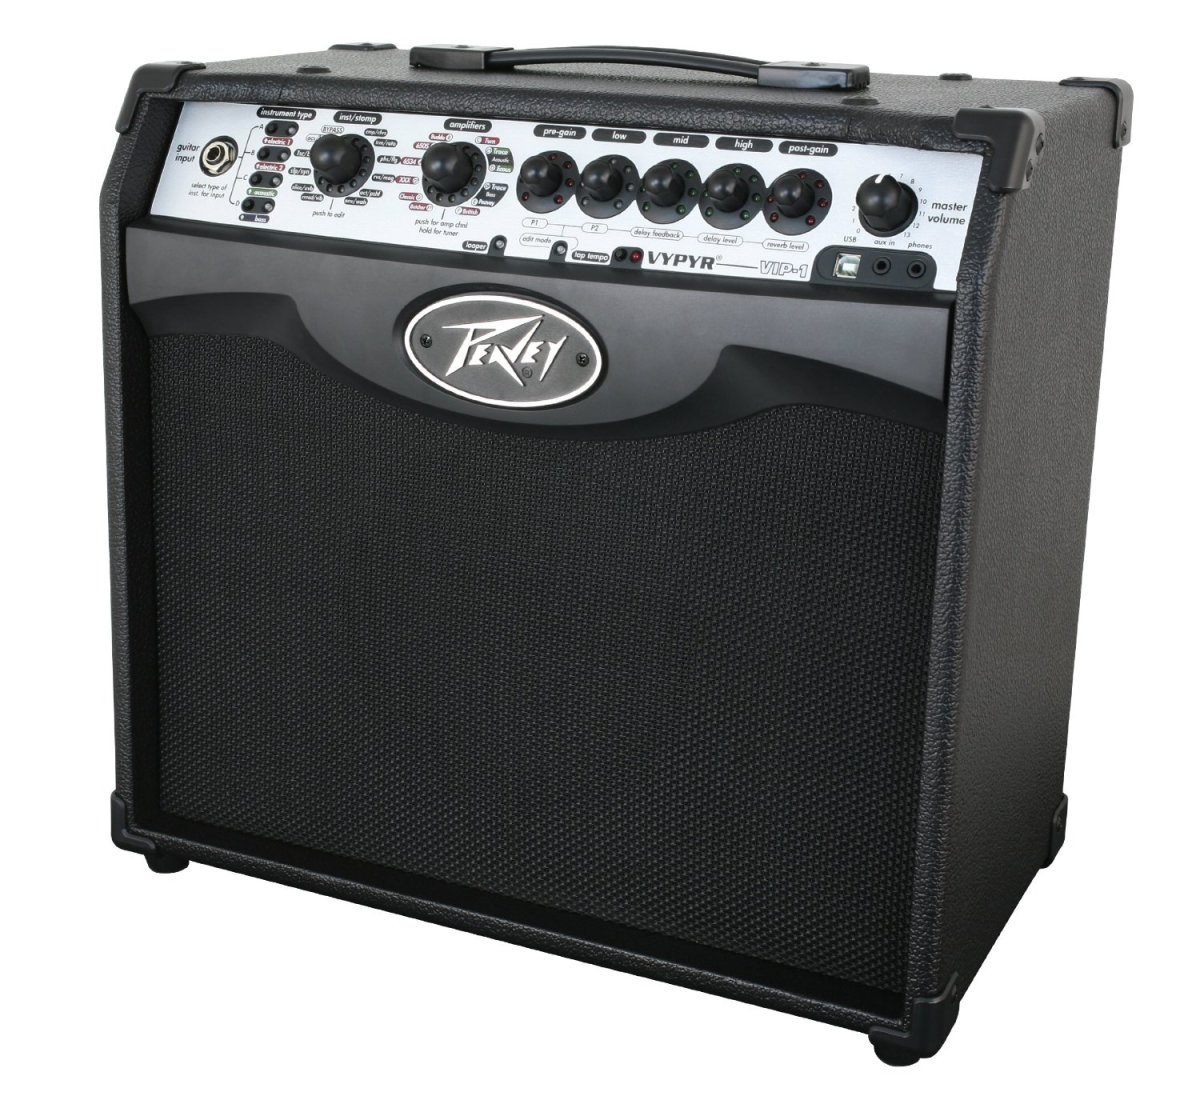 Best Small Guitar Amps for Practice and Home Use